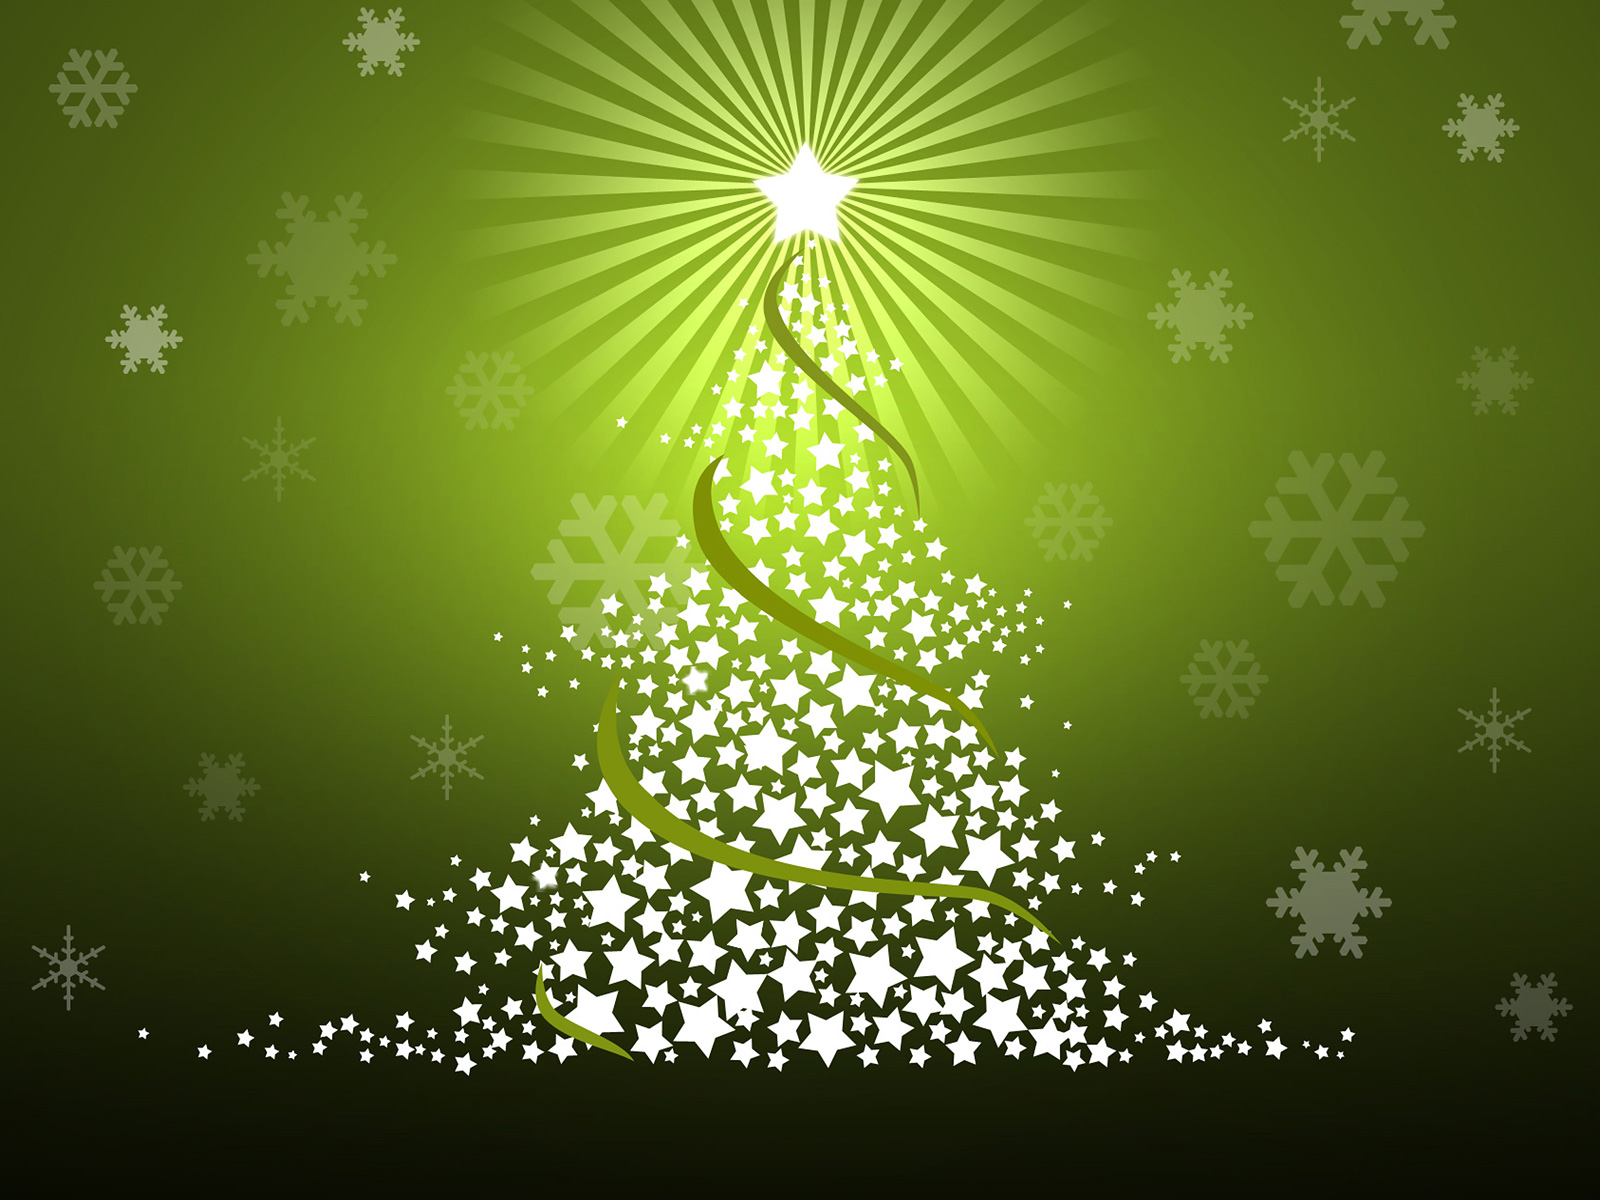 christmas tree desktop background   Desktop Wallpaper 1600x1200